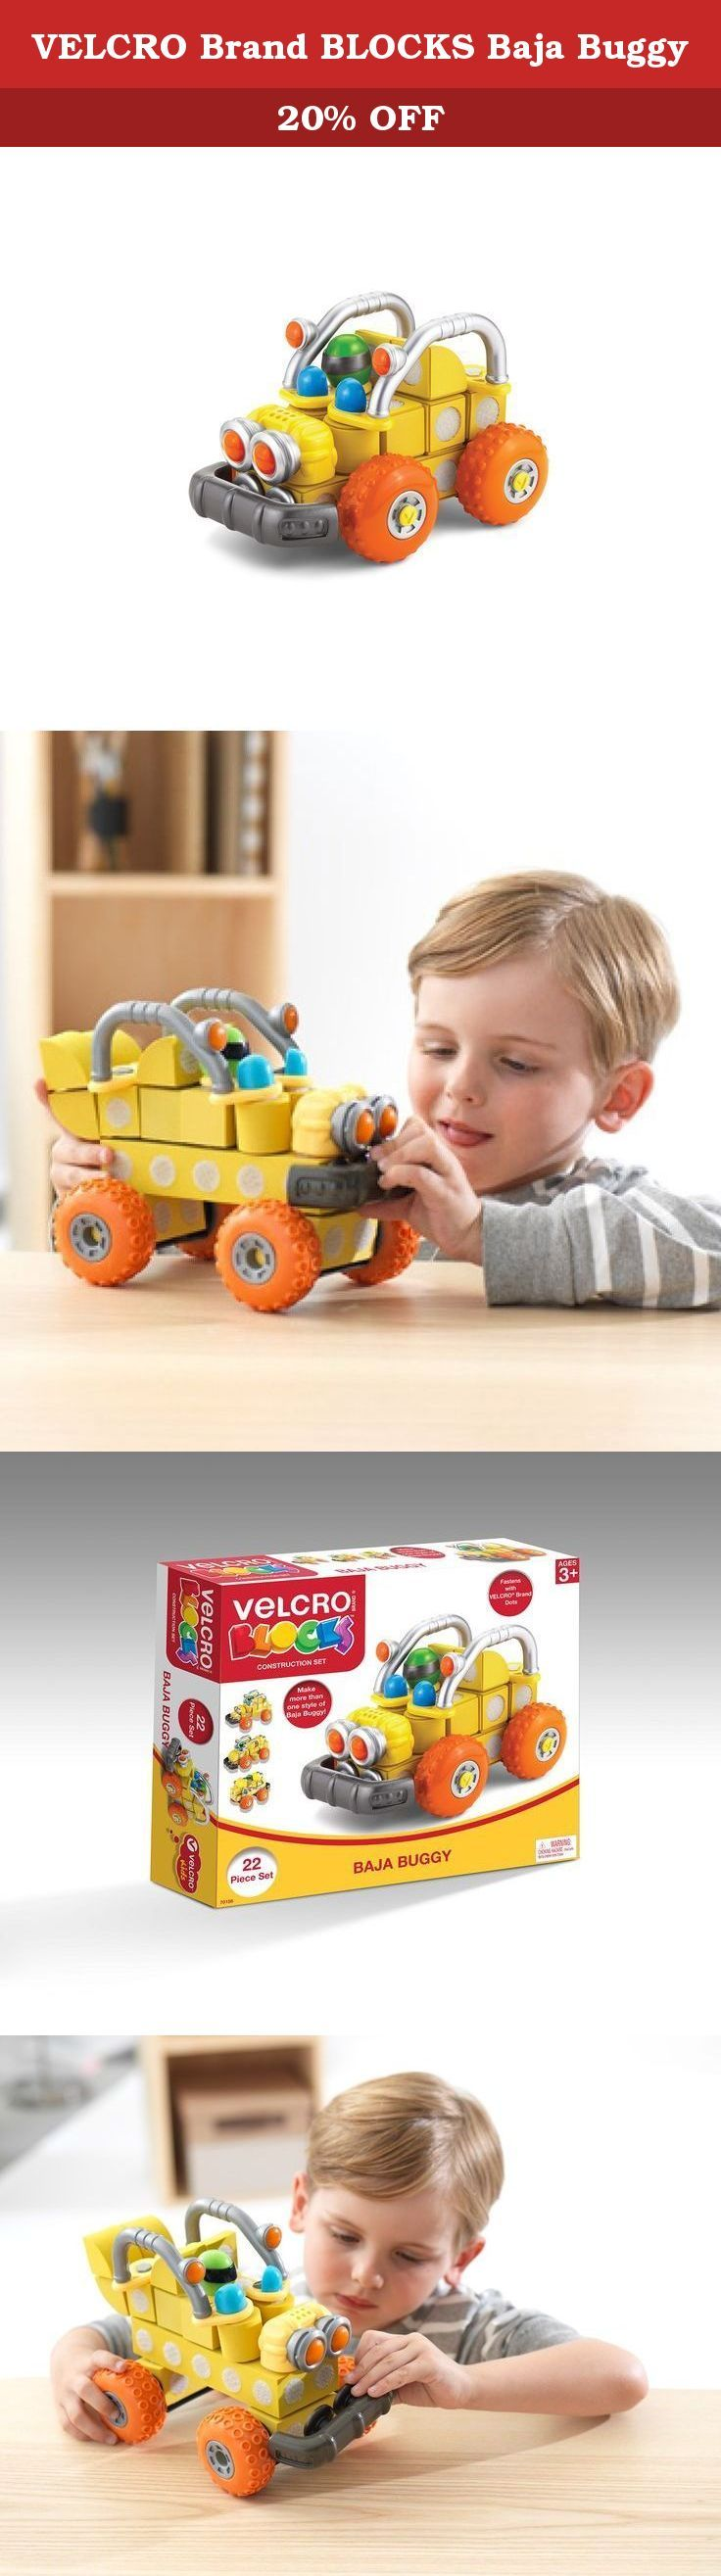 VELCRO Brand BLOCKS Baja Buggy. Build more with VELCRO Brand BLOCKS! These lightweight blocks attach together with clever VELCRO Brand Fastener dots. The Baja Buggy Set allows kids to assemble their own custom dune buggy. This set includes 22 pieces that can be combined with other VELCRO Brand BLOCK sets for extended entertainment. Children will love these safe, forgiving blocks that are tactile and easy for small hands to hold and play with. Recommended for ages 3 years and up and…